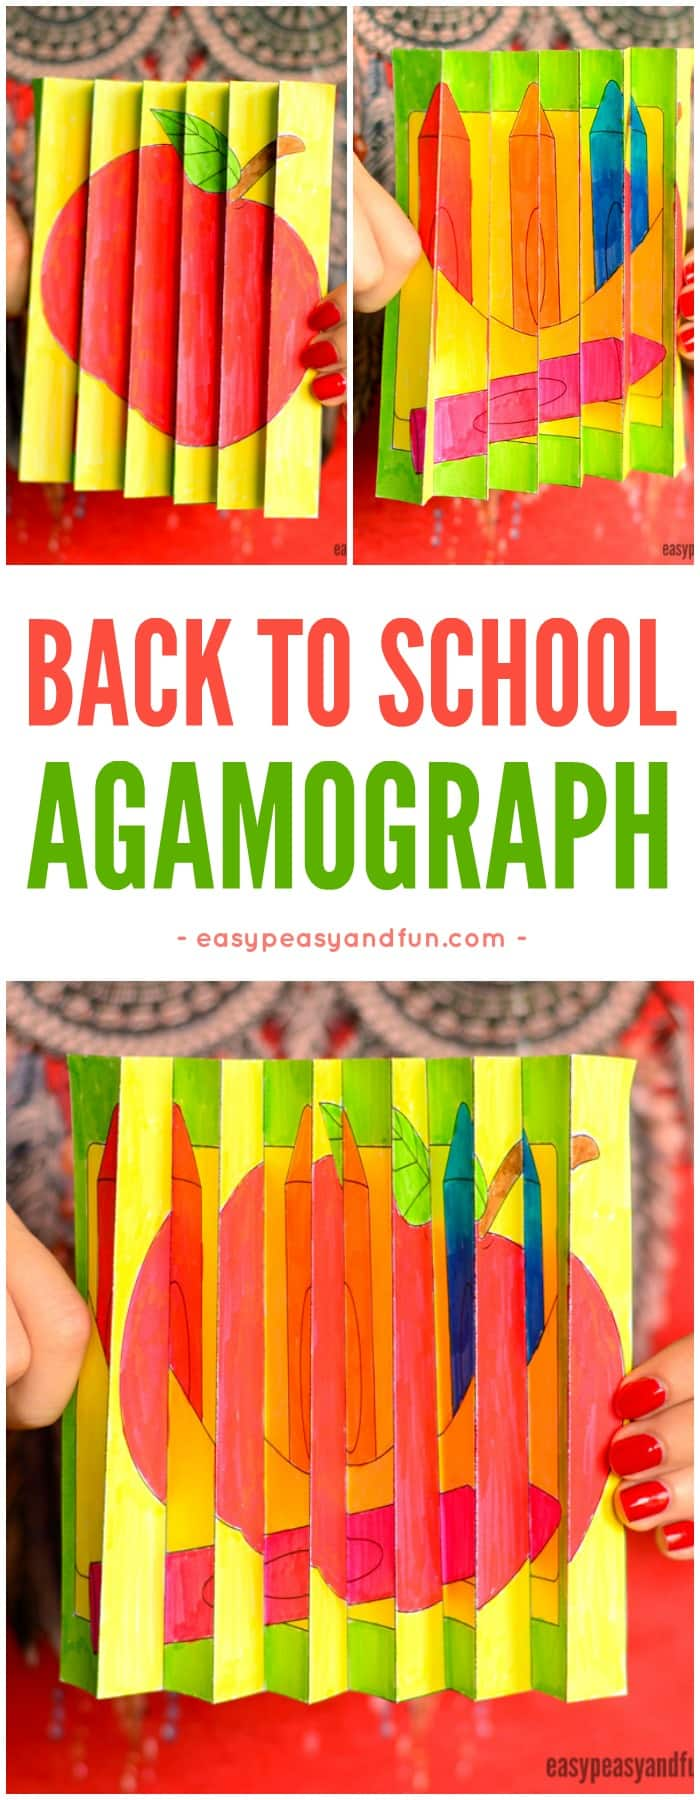 Printable Back to School Agamograph Paper Craft for Kids